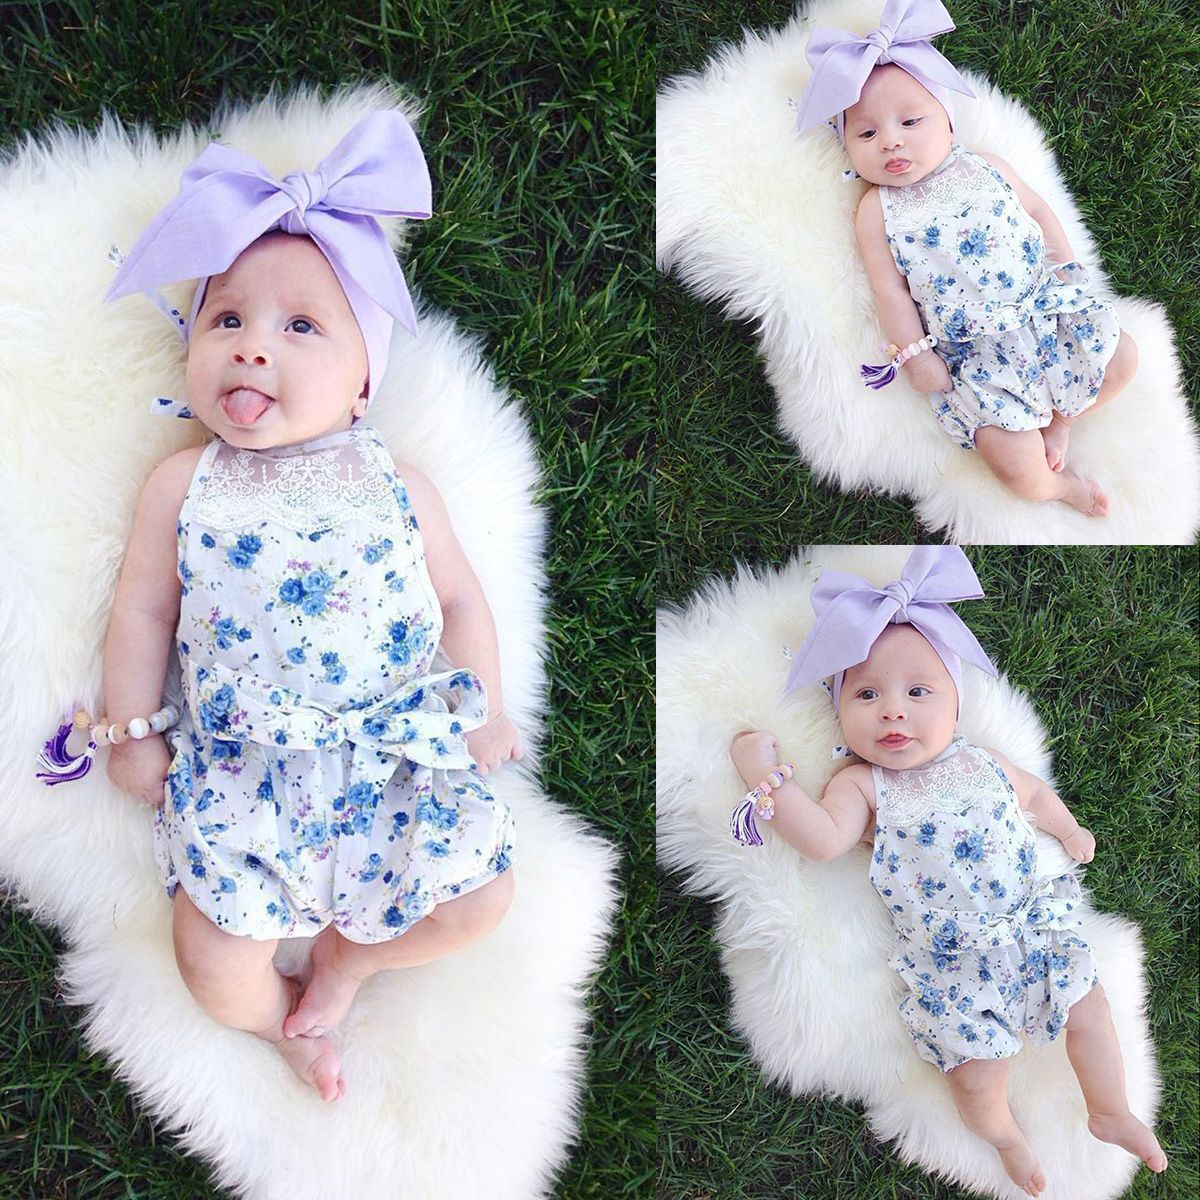 f5409adee41a51 Fashionable and cute romper for your baby girl Blue floral make your baby  like a fairy.